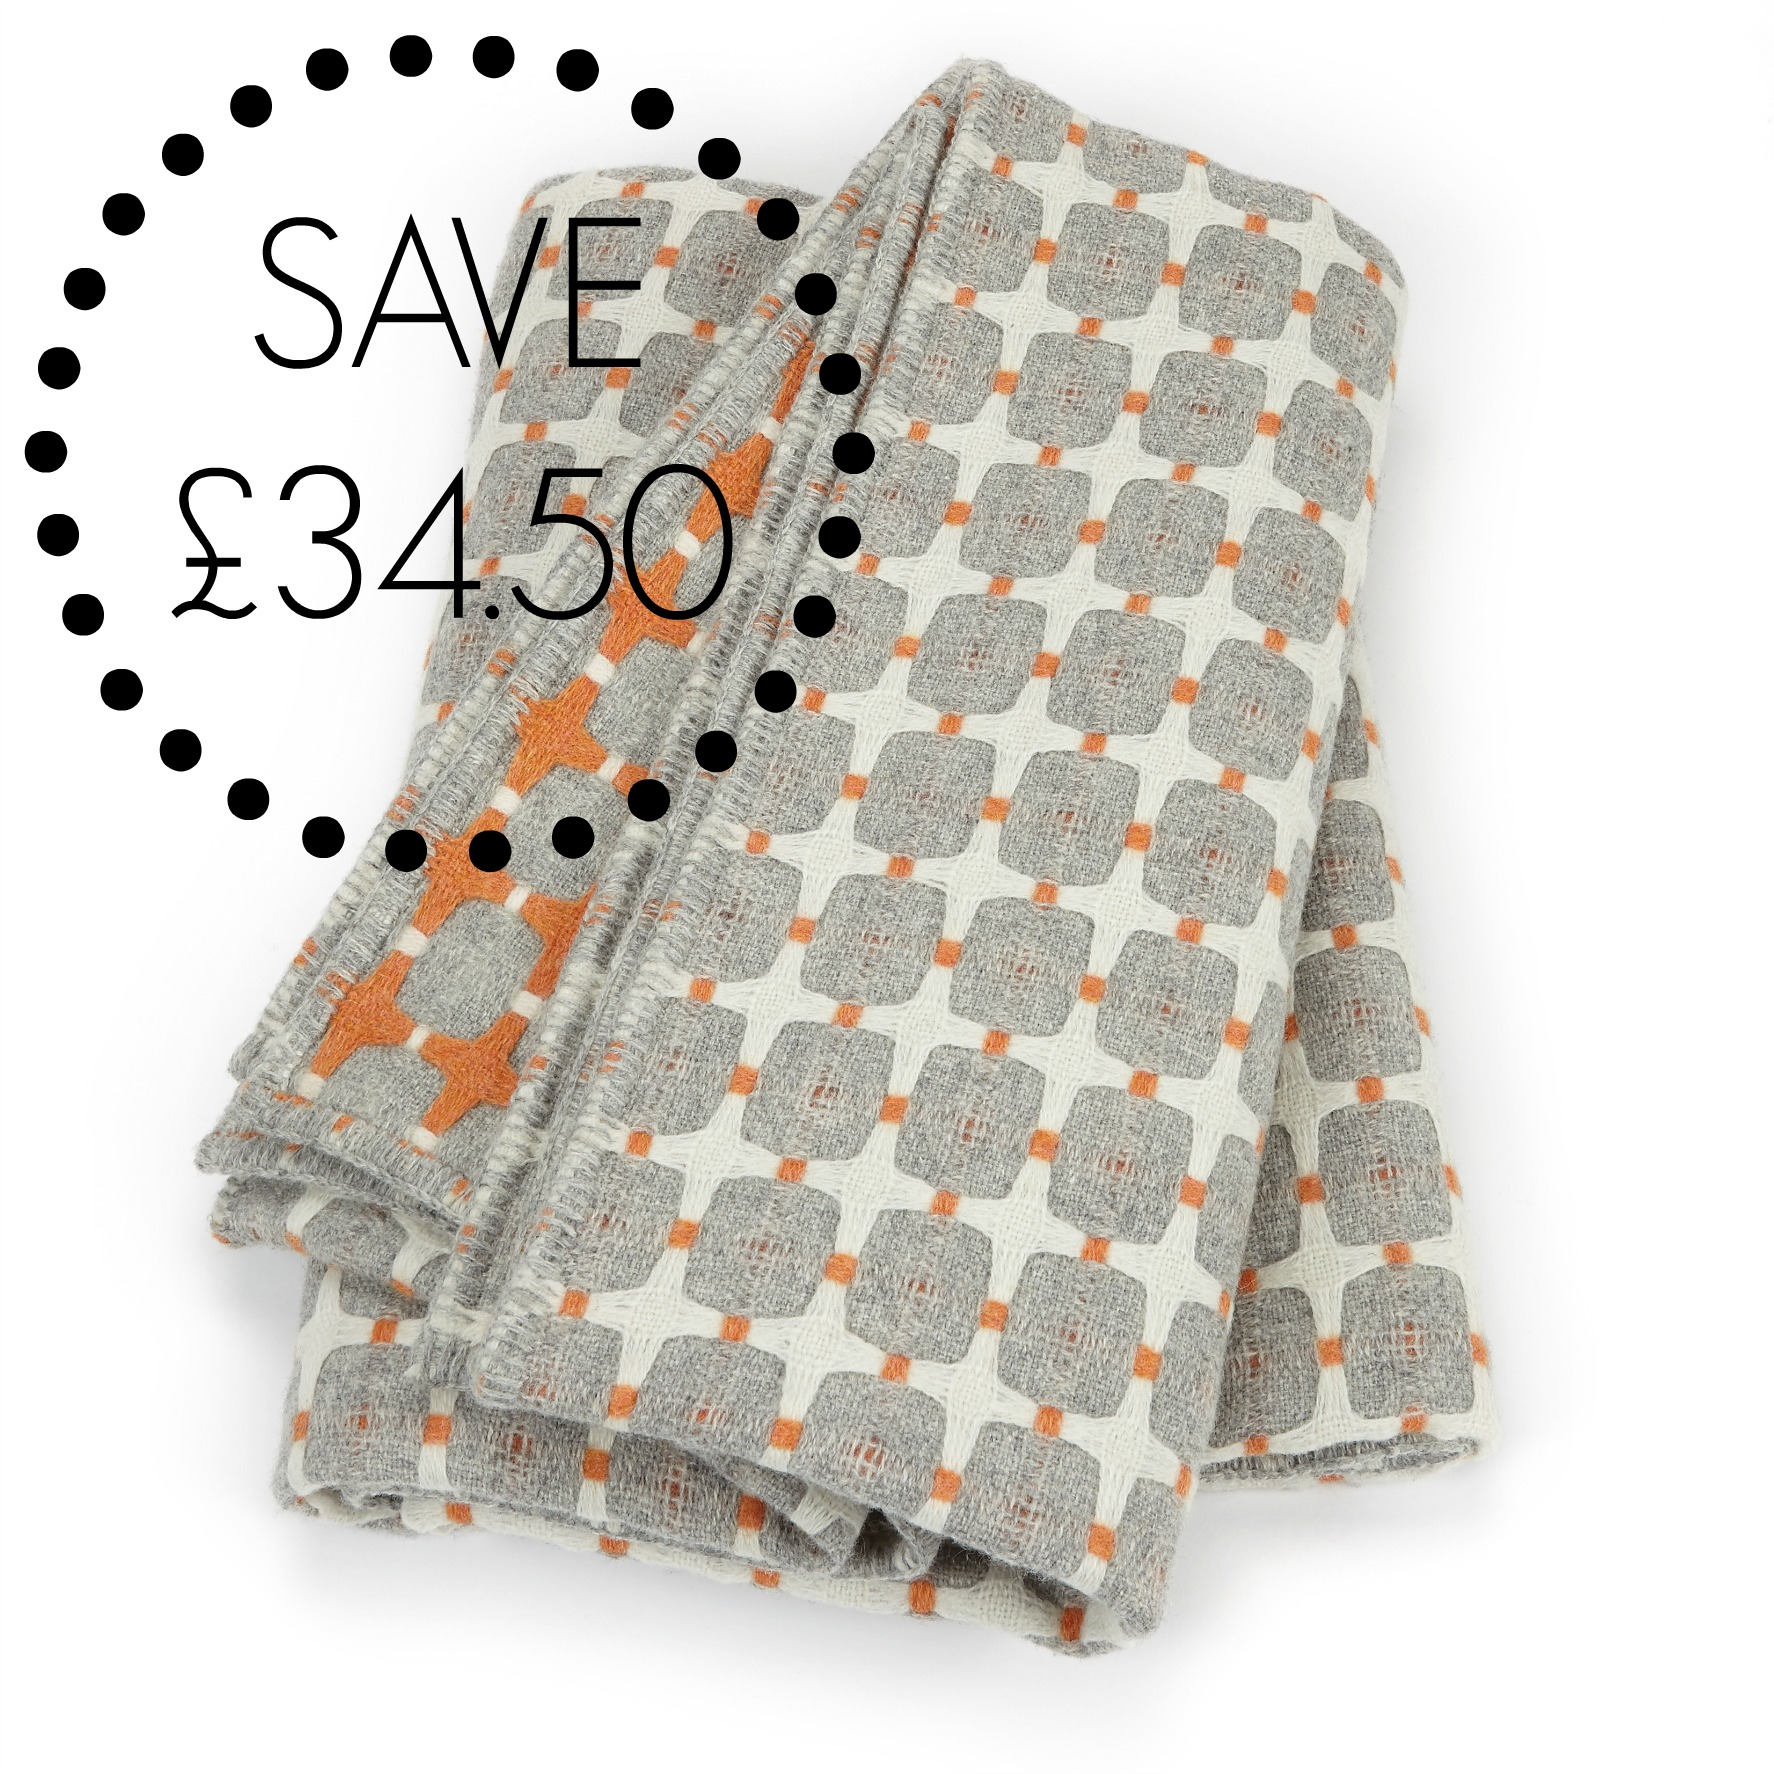 625 Line Welsh Blanket £230 Decorator's Notebook